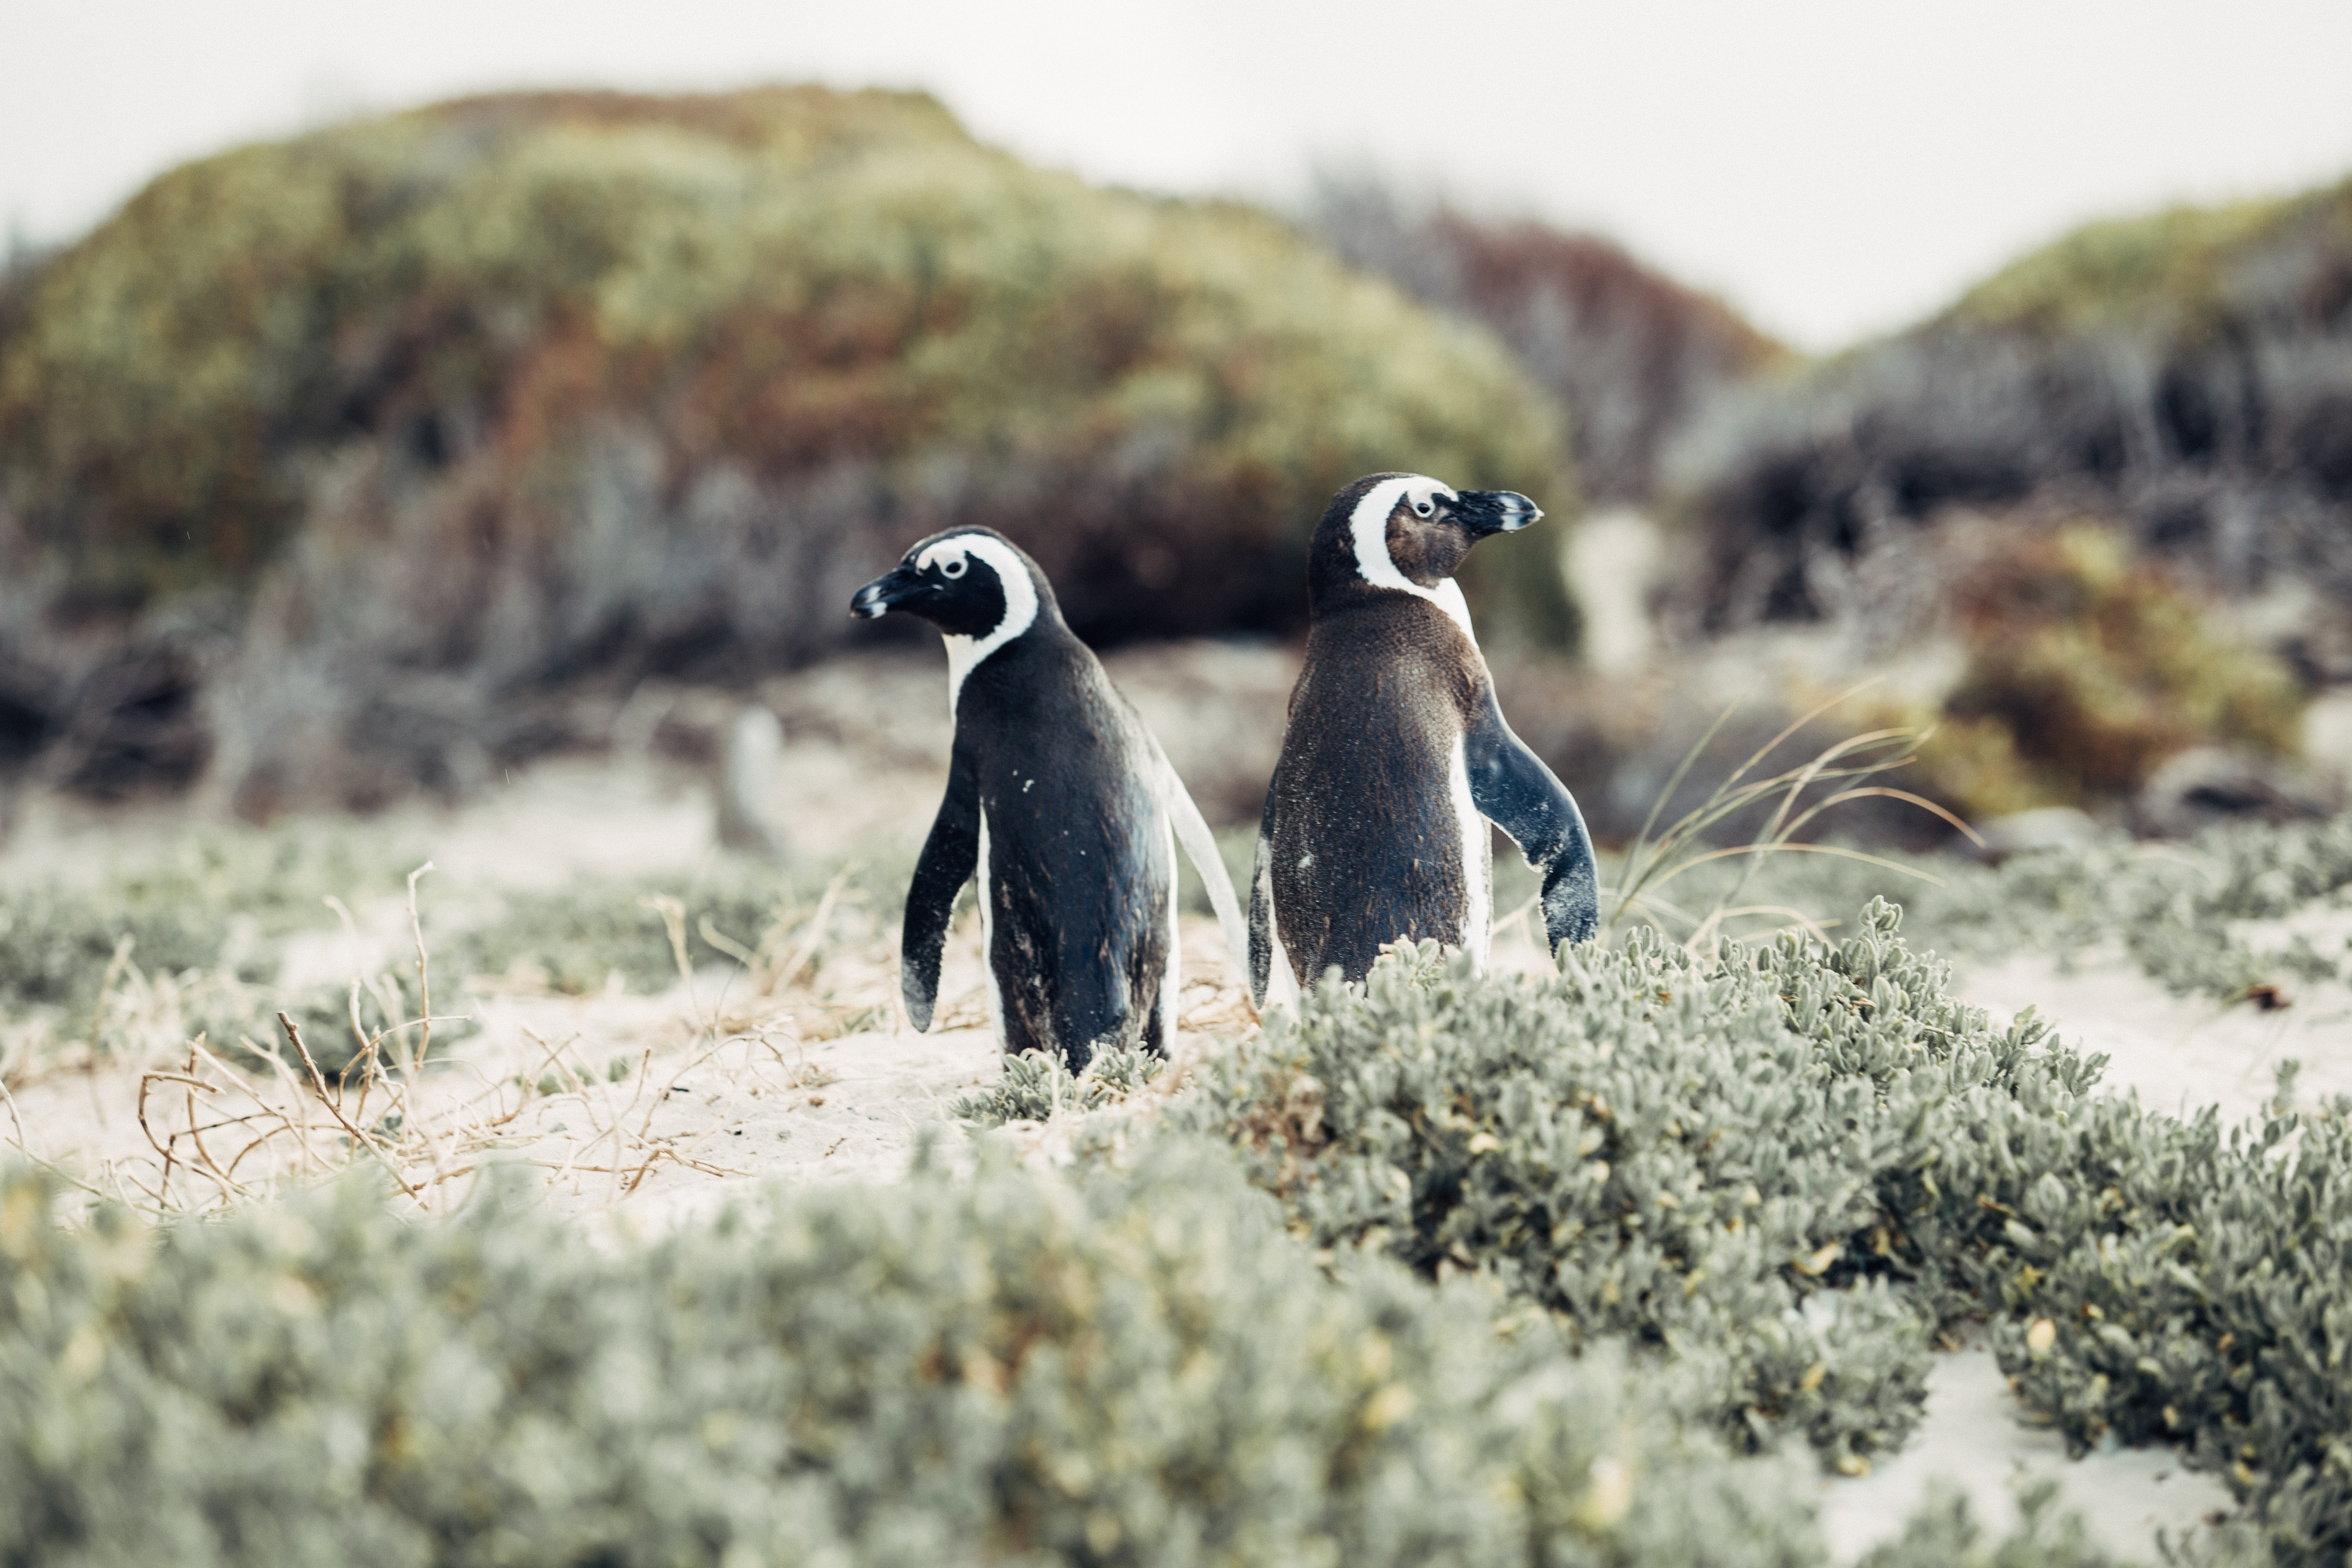 Two penguins stand among plants, looking in opposite directions, in Simon's Town